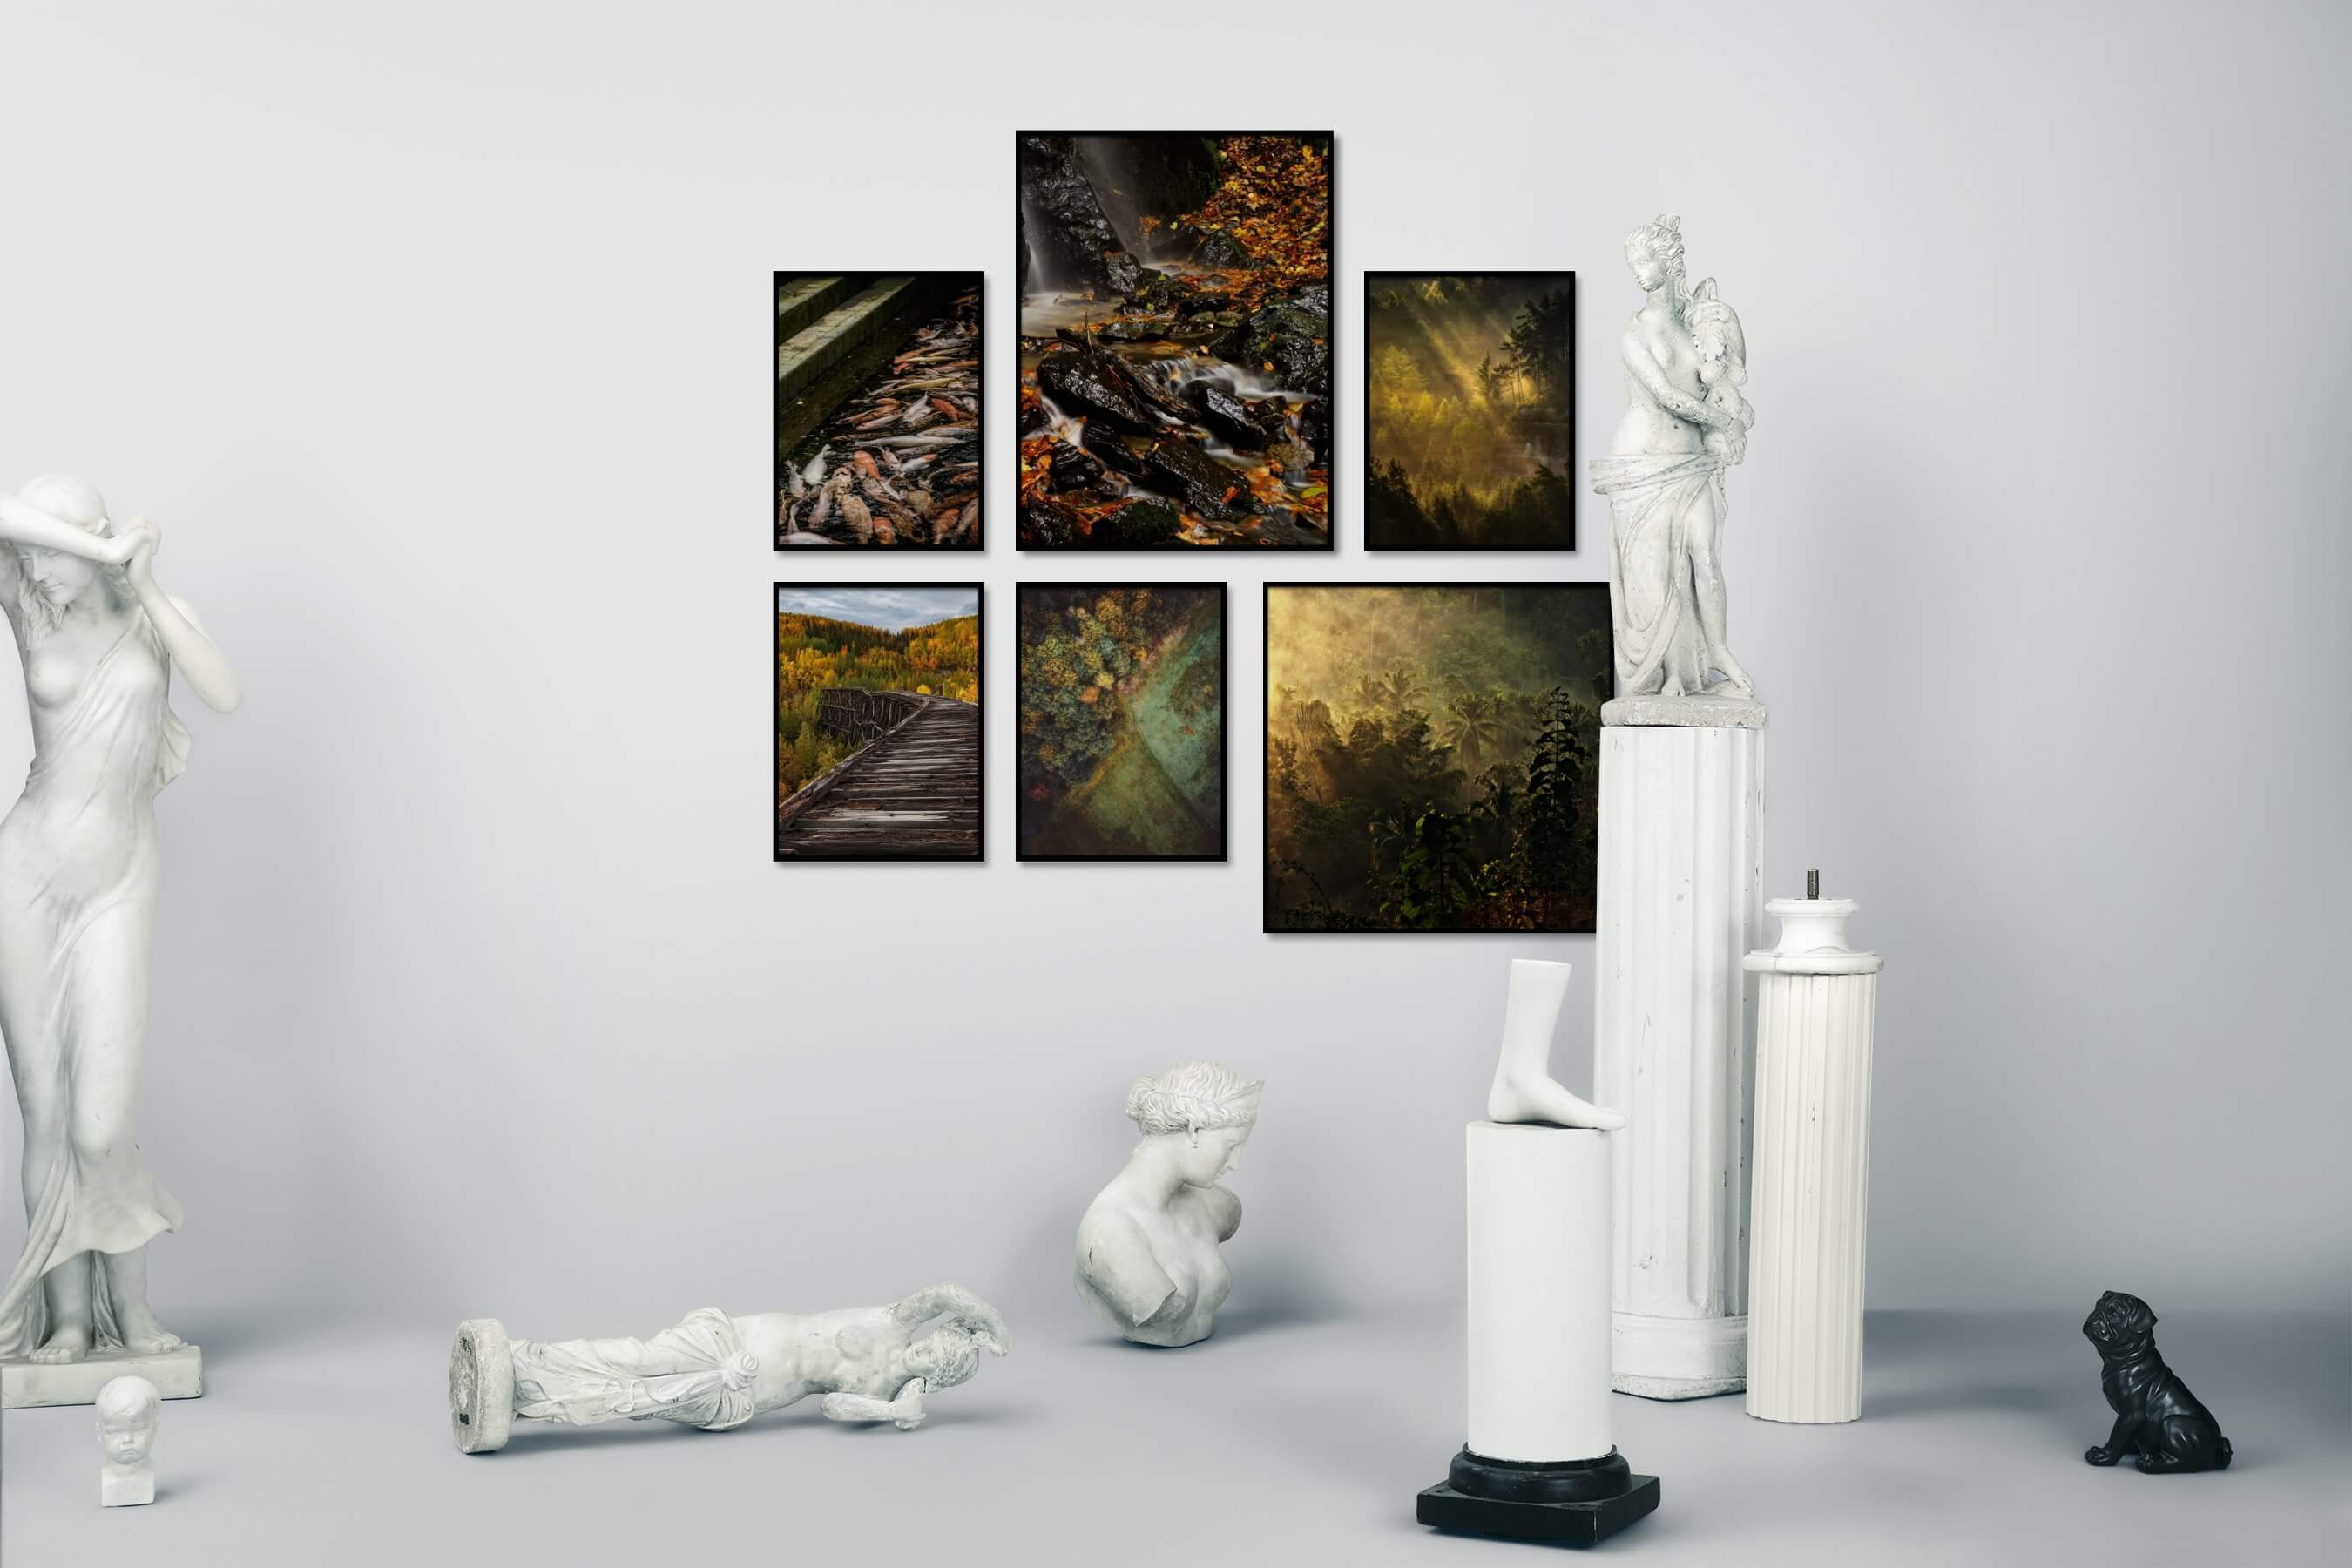 Gallery wall idea with six framed pictures arranged on a wall depicting Animals, Nature, For the Moderate, Country Life, and Mindfulness